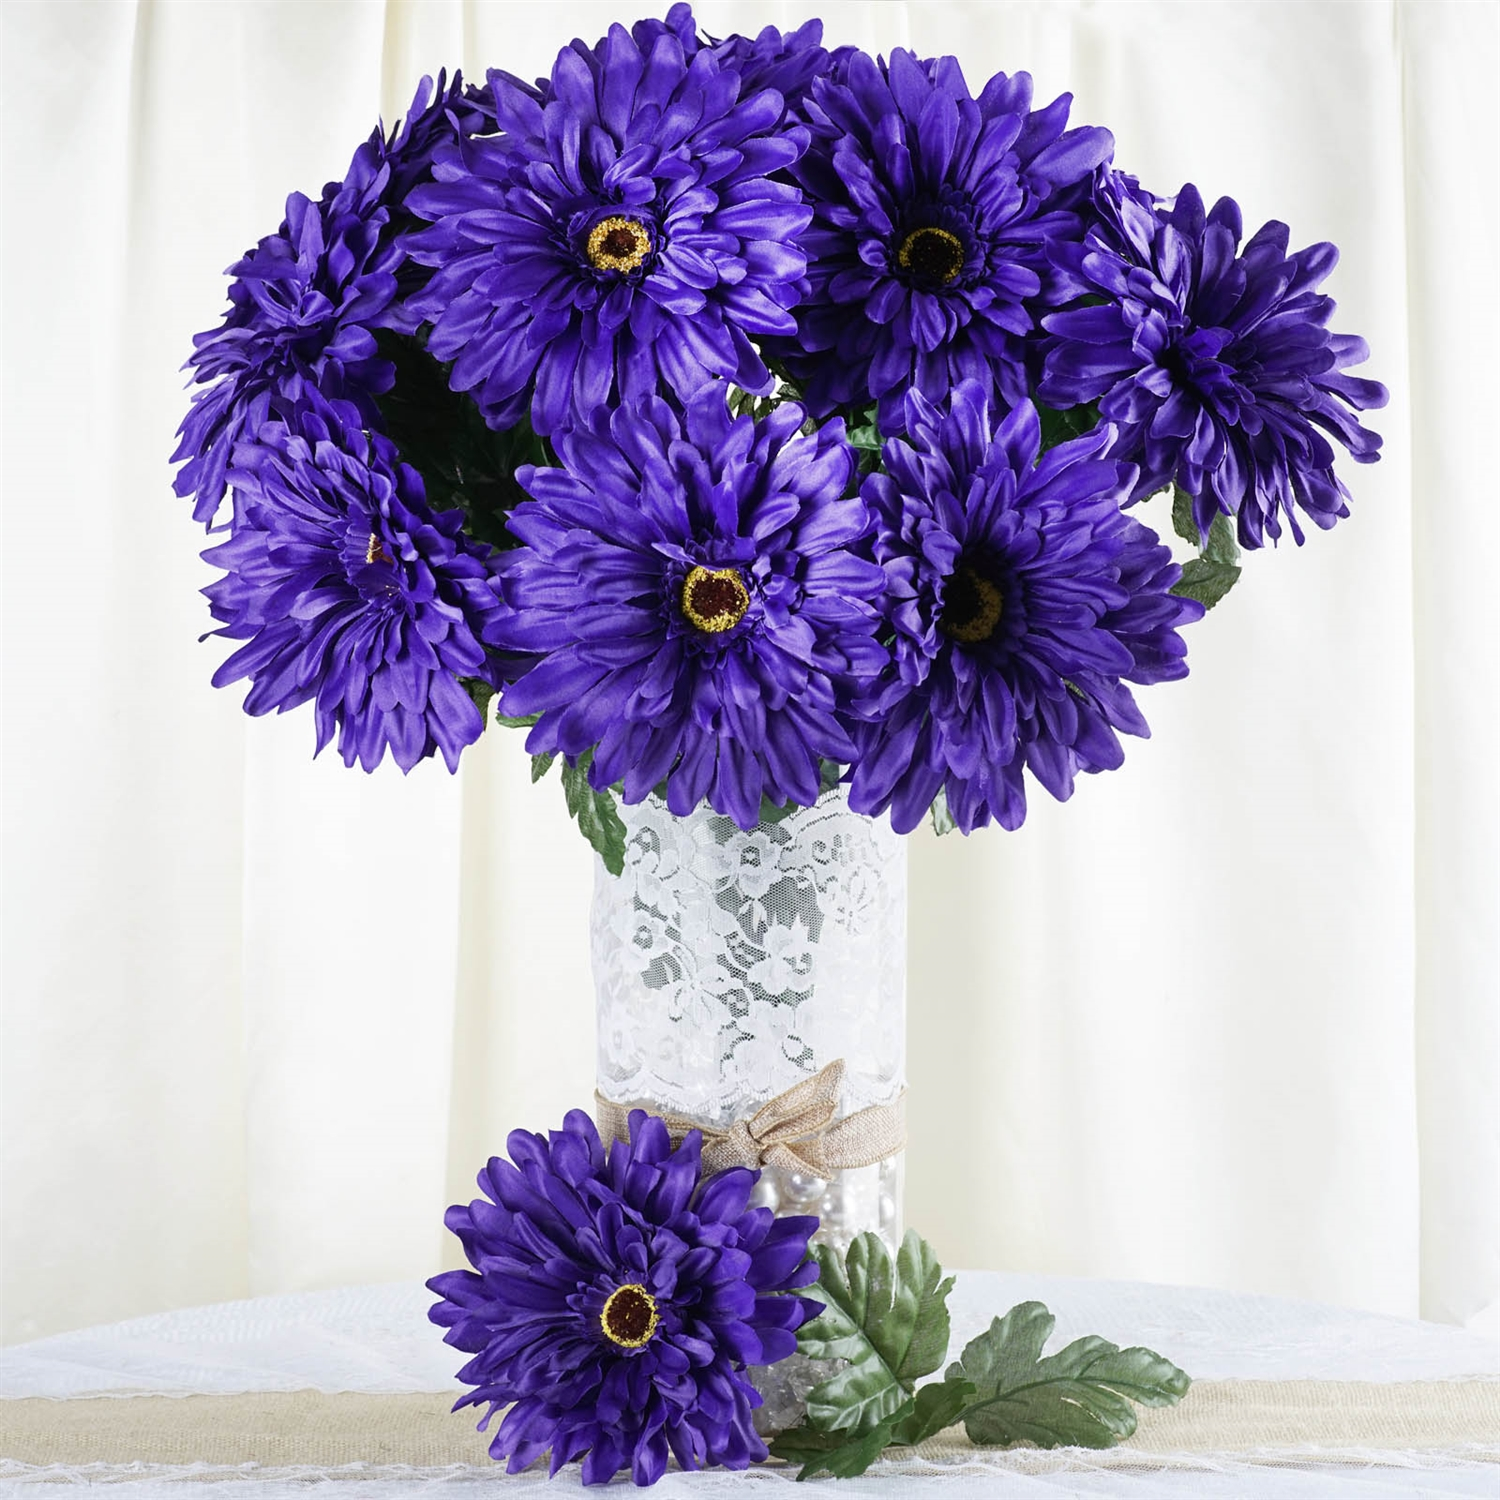 28 Gerbera Daisy Flowers Bush Wedding Vase Centerpiece Decor -Purple